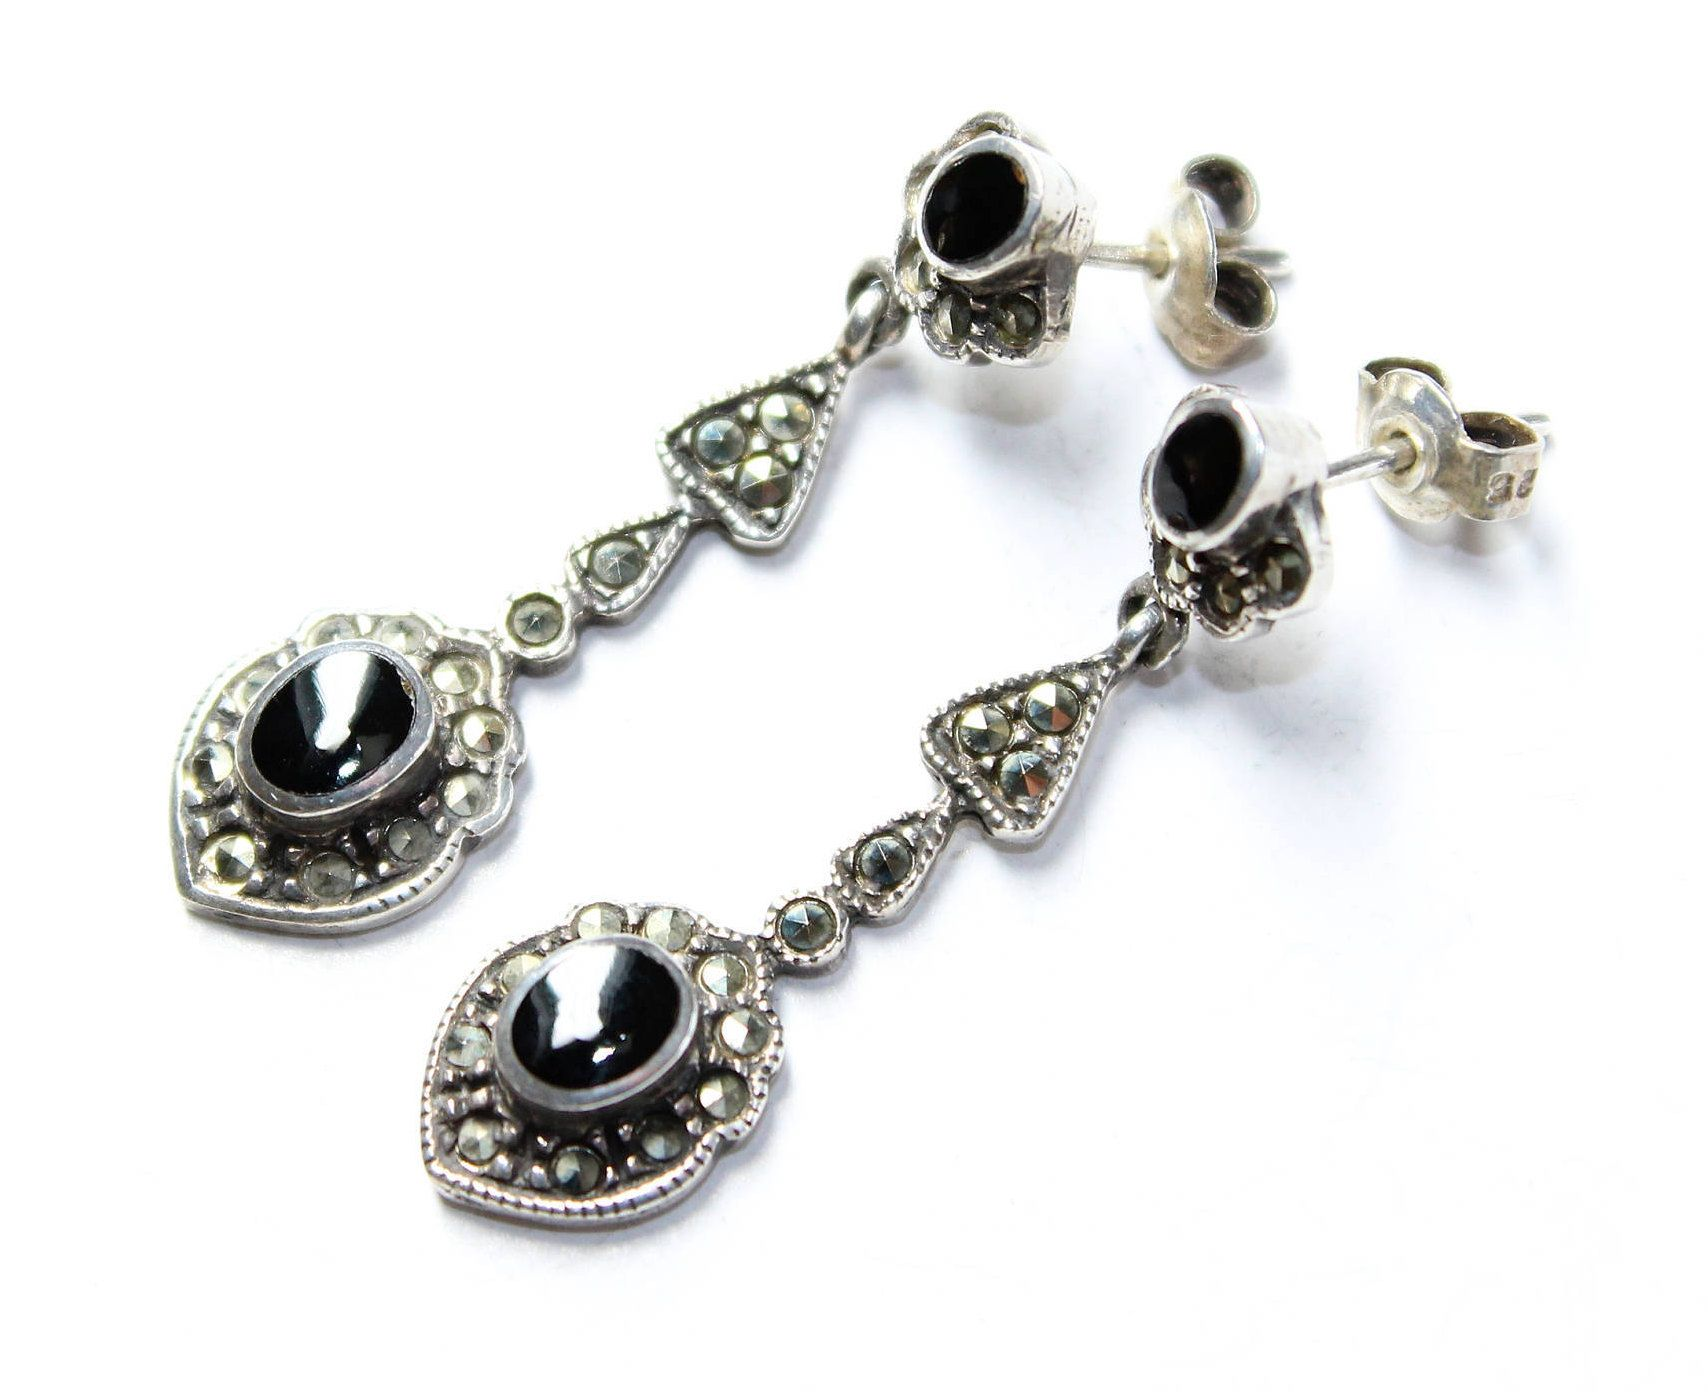 Body piercing earrings  Sparkly Marcasite Black and Silver Coloured Dangle Drop Vintage